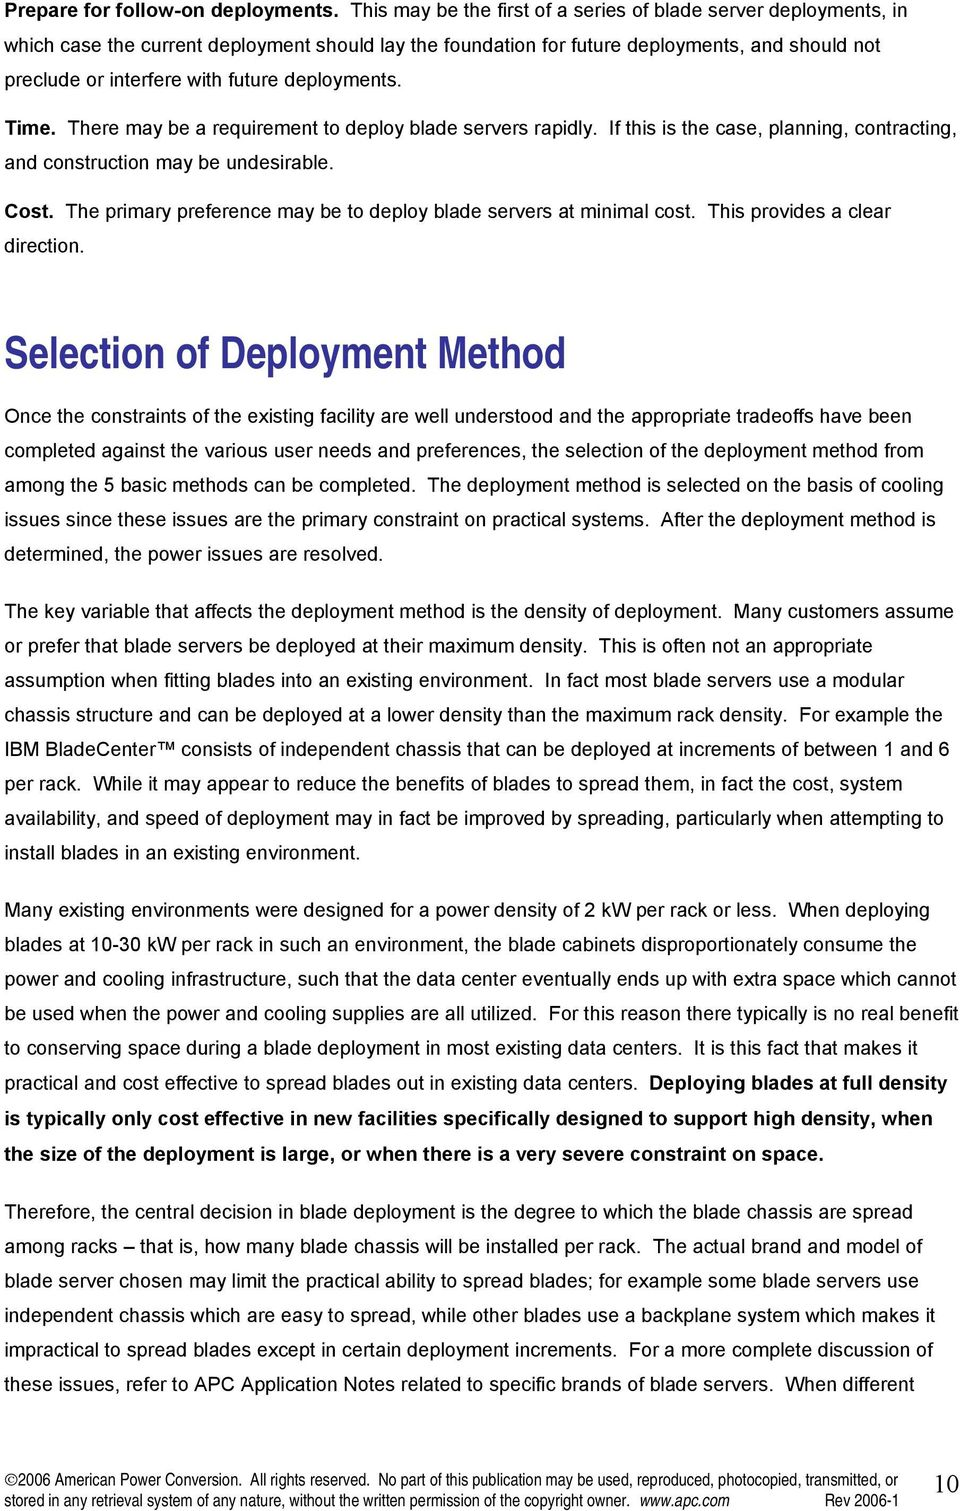 deployments. Time. There may be a requirement to deploy blade servers rapidly. If this is the case, planning, contracting, and construction may be undesirable. Cost.